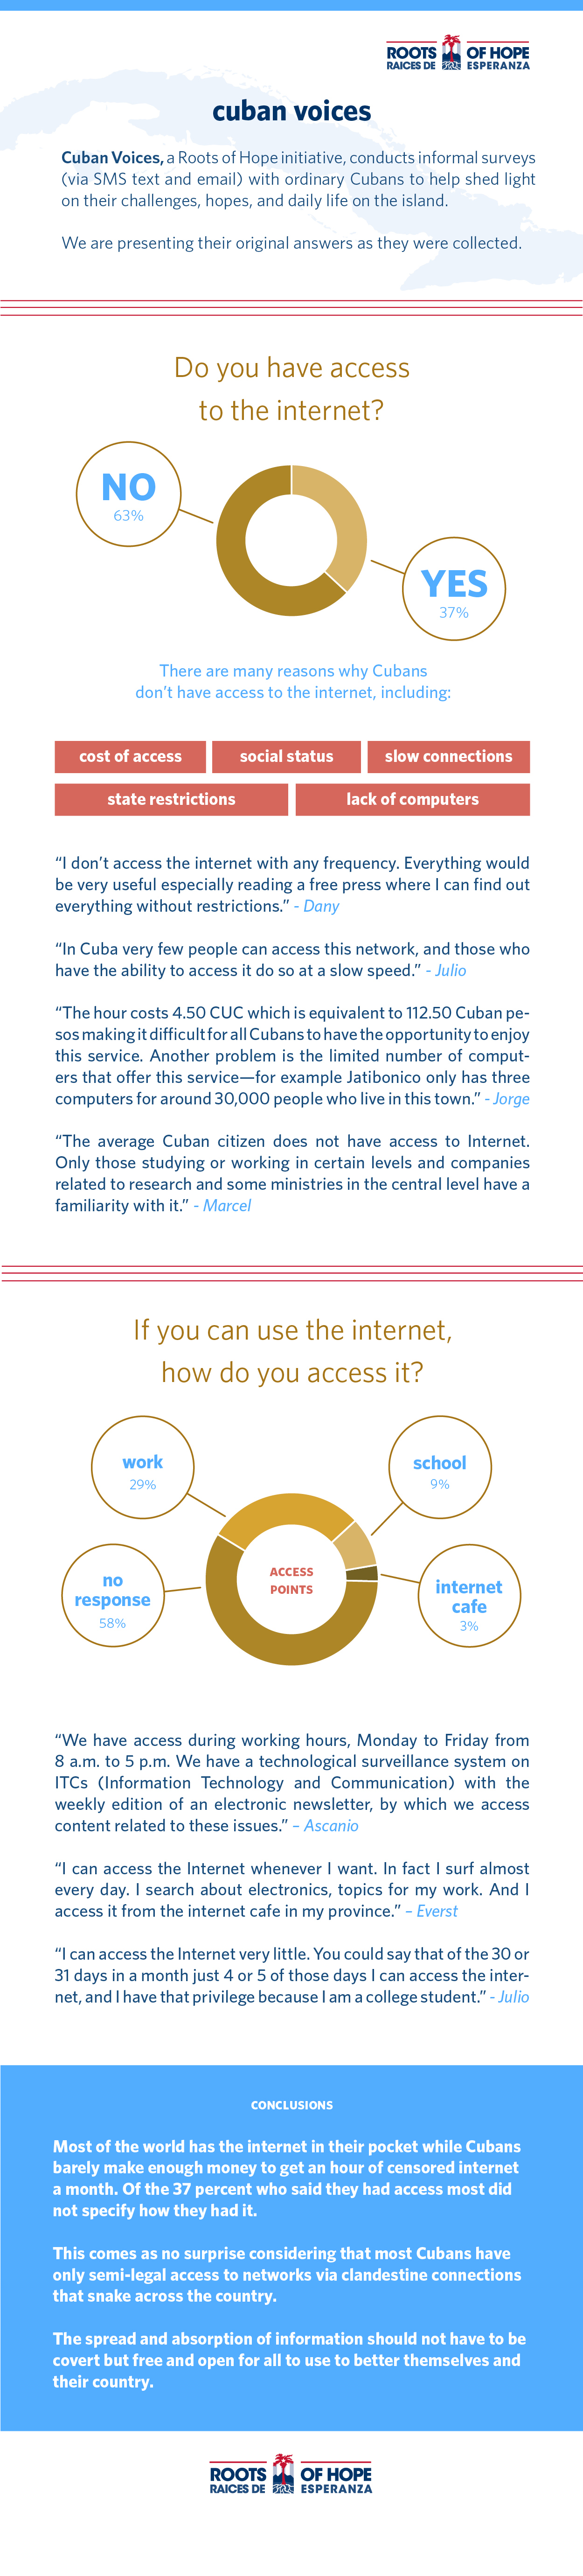 Infographic about internet usage